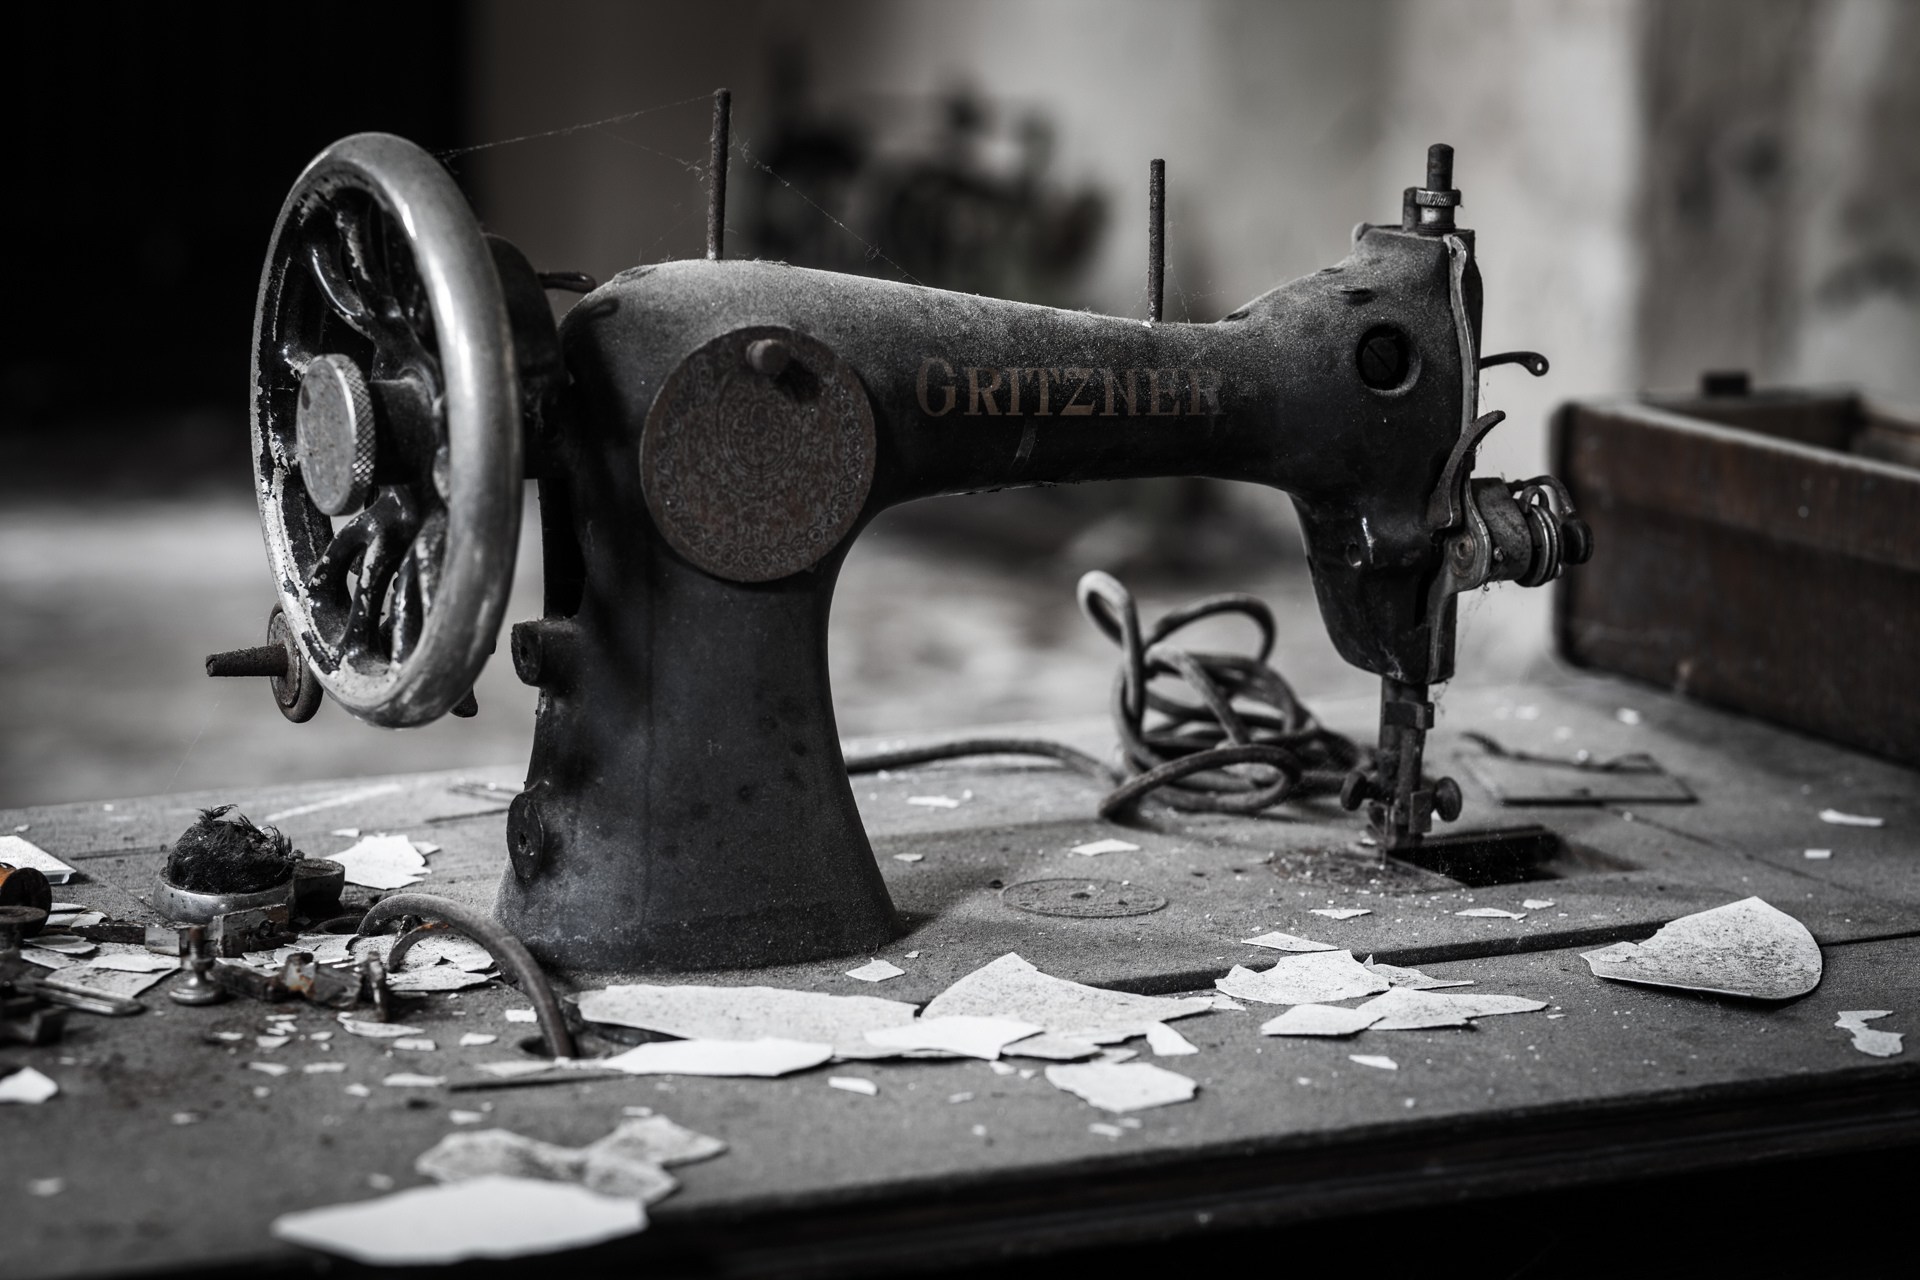 Urban Exploration - Soldier School - Stopped Sewing